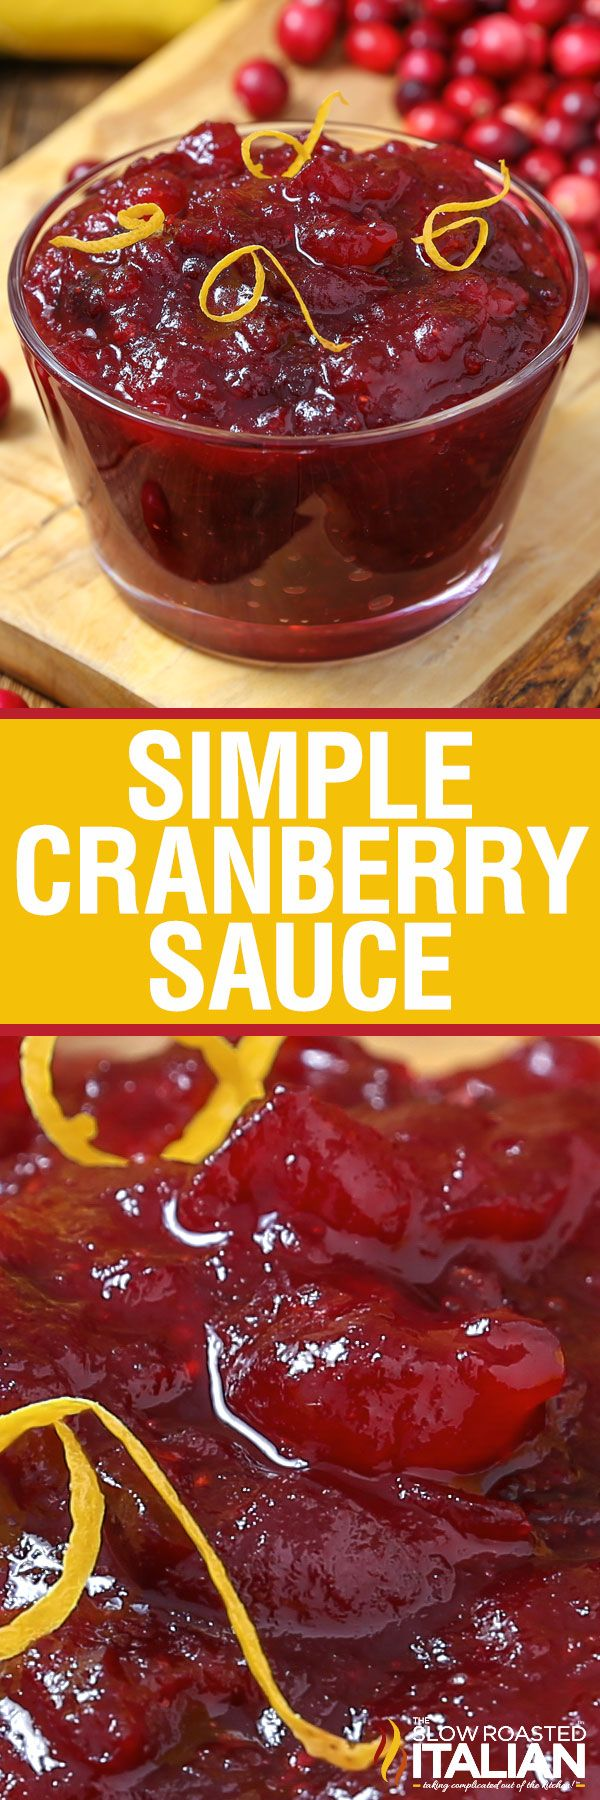 3-Ingredient Cranberry Sauce is soon to be a family tradition!